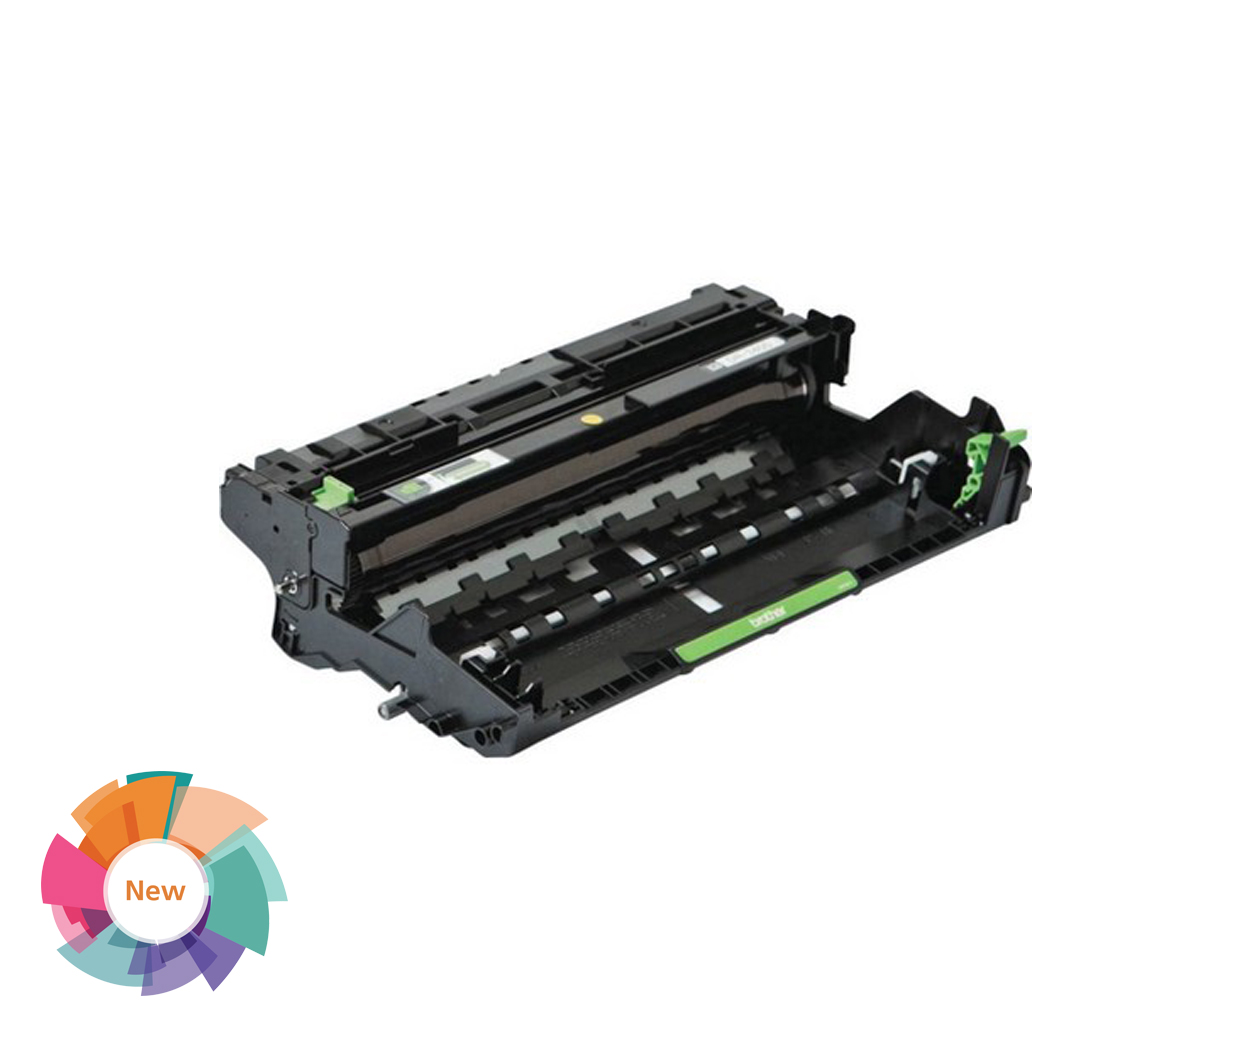 Stationery Clearance - Brother DR3400 Drum Unit